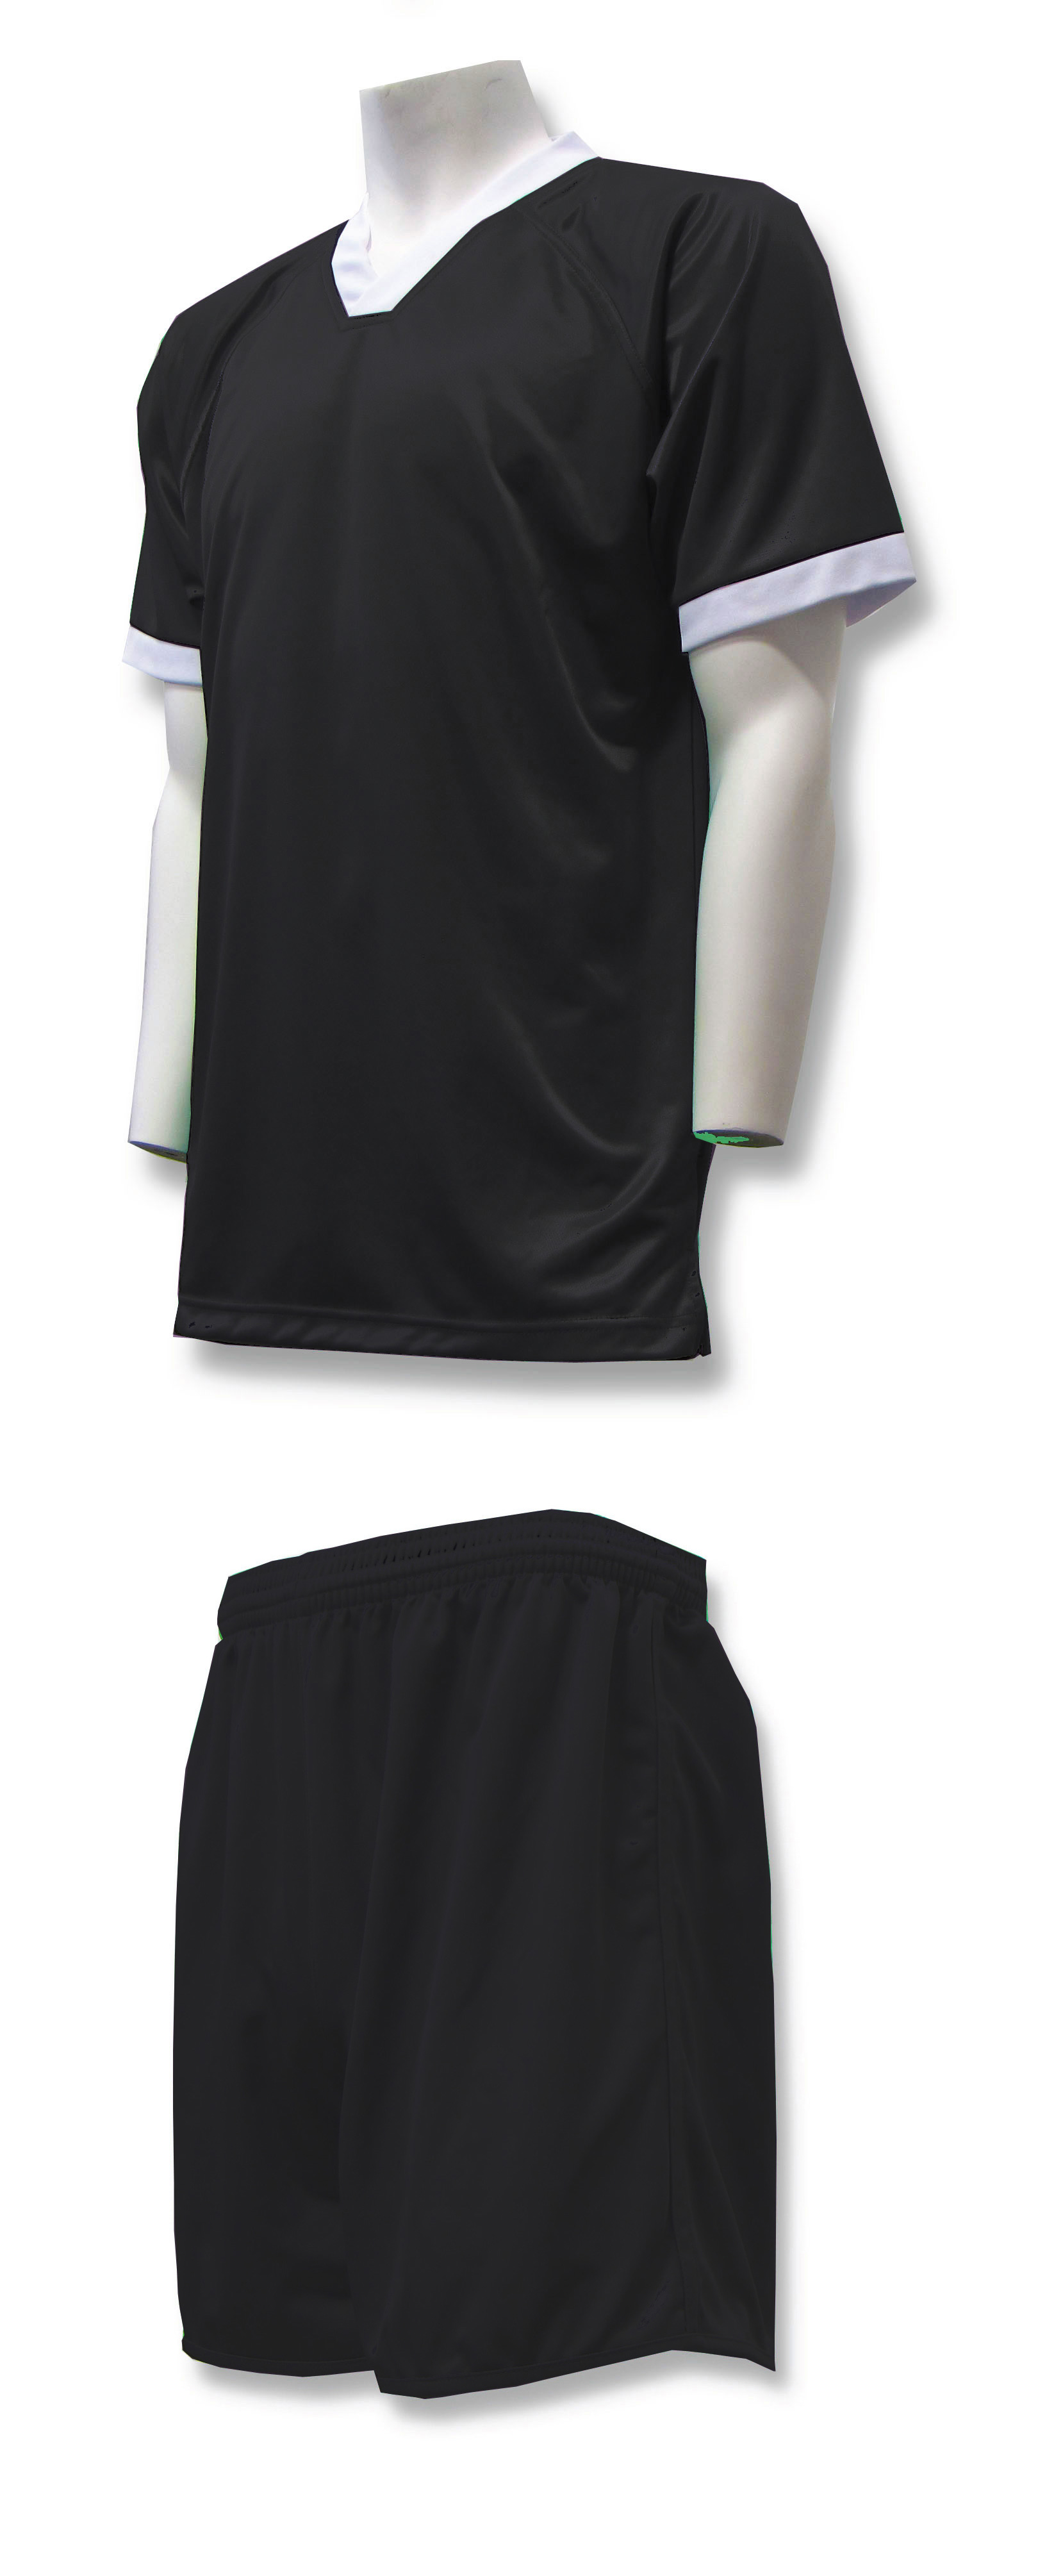 Forza soccer uniform kit in black by Code Four Athletics